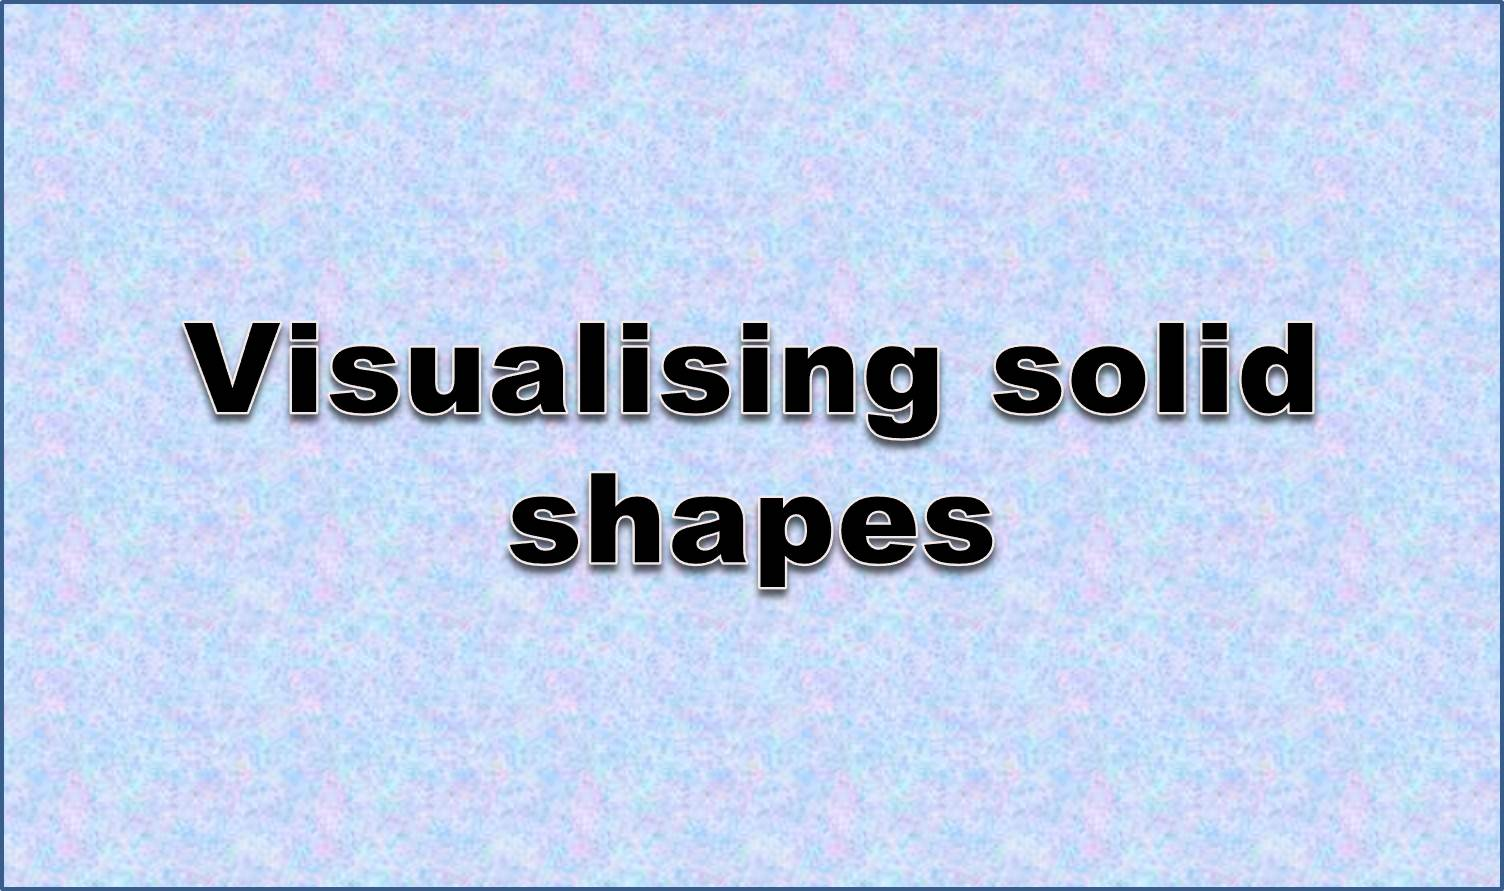 http://study.aisectonline.com/images/Interpreting a scale drawing.jpg